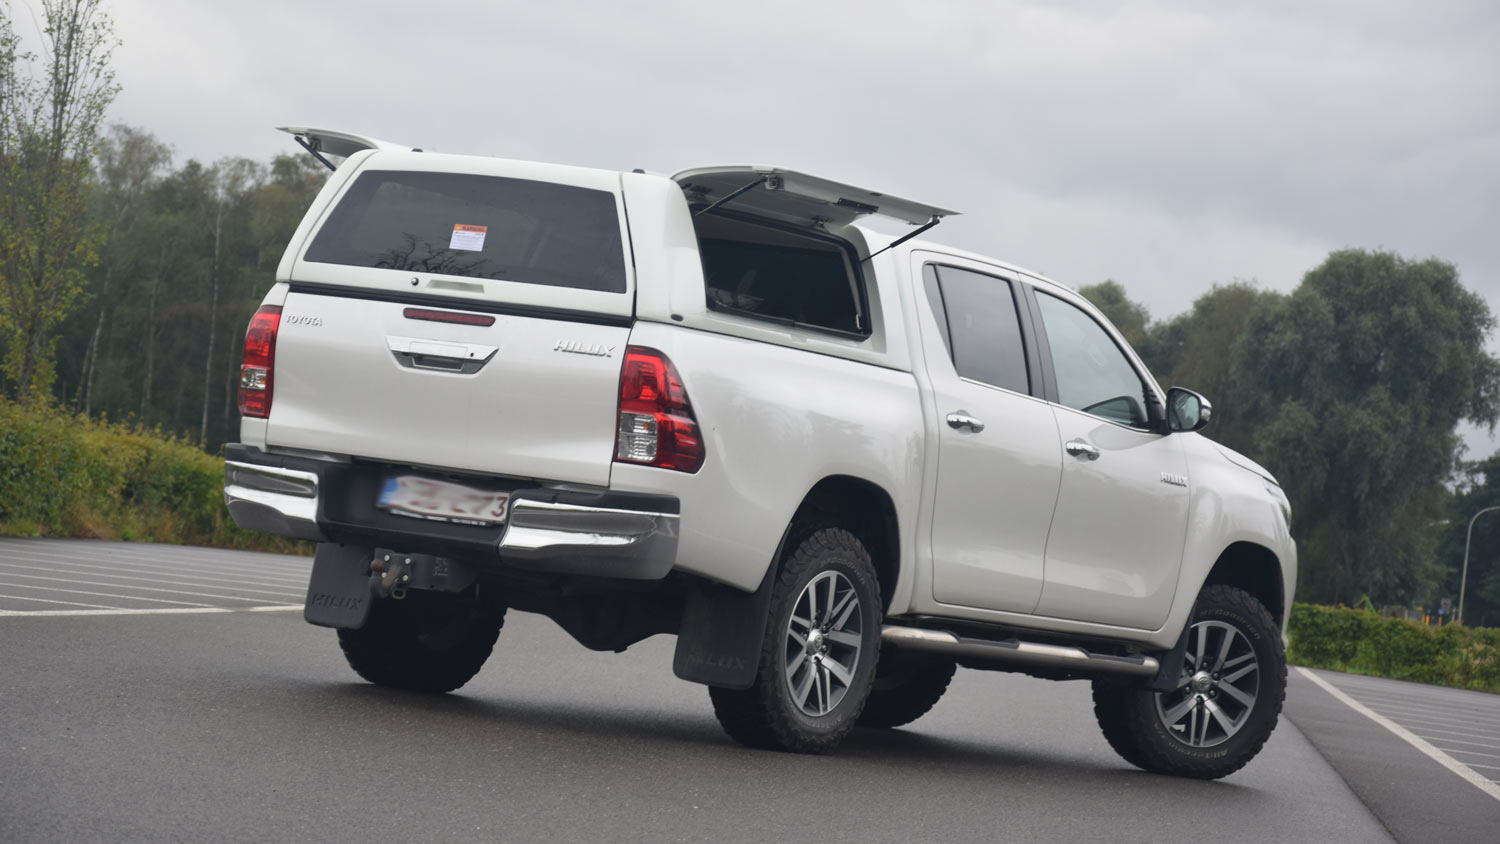 Force Pro Plus Canopy on Toyota Hilux 2016 - Image 3